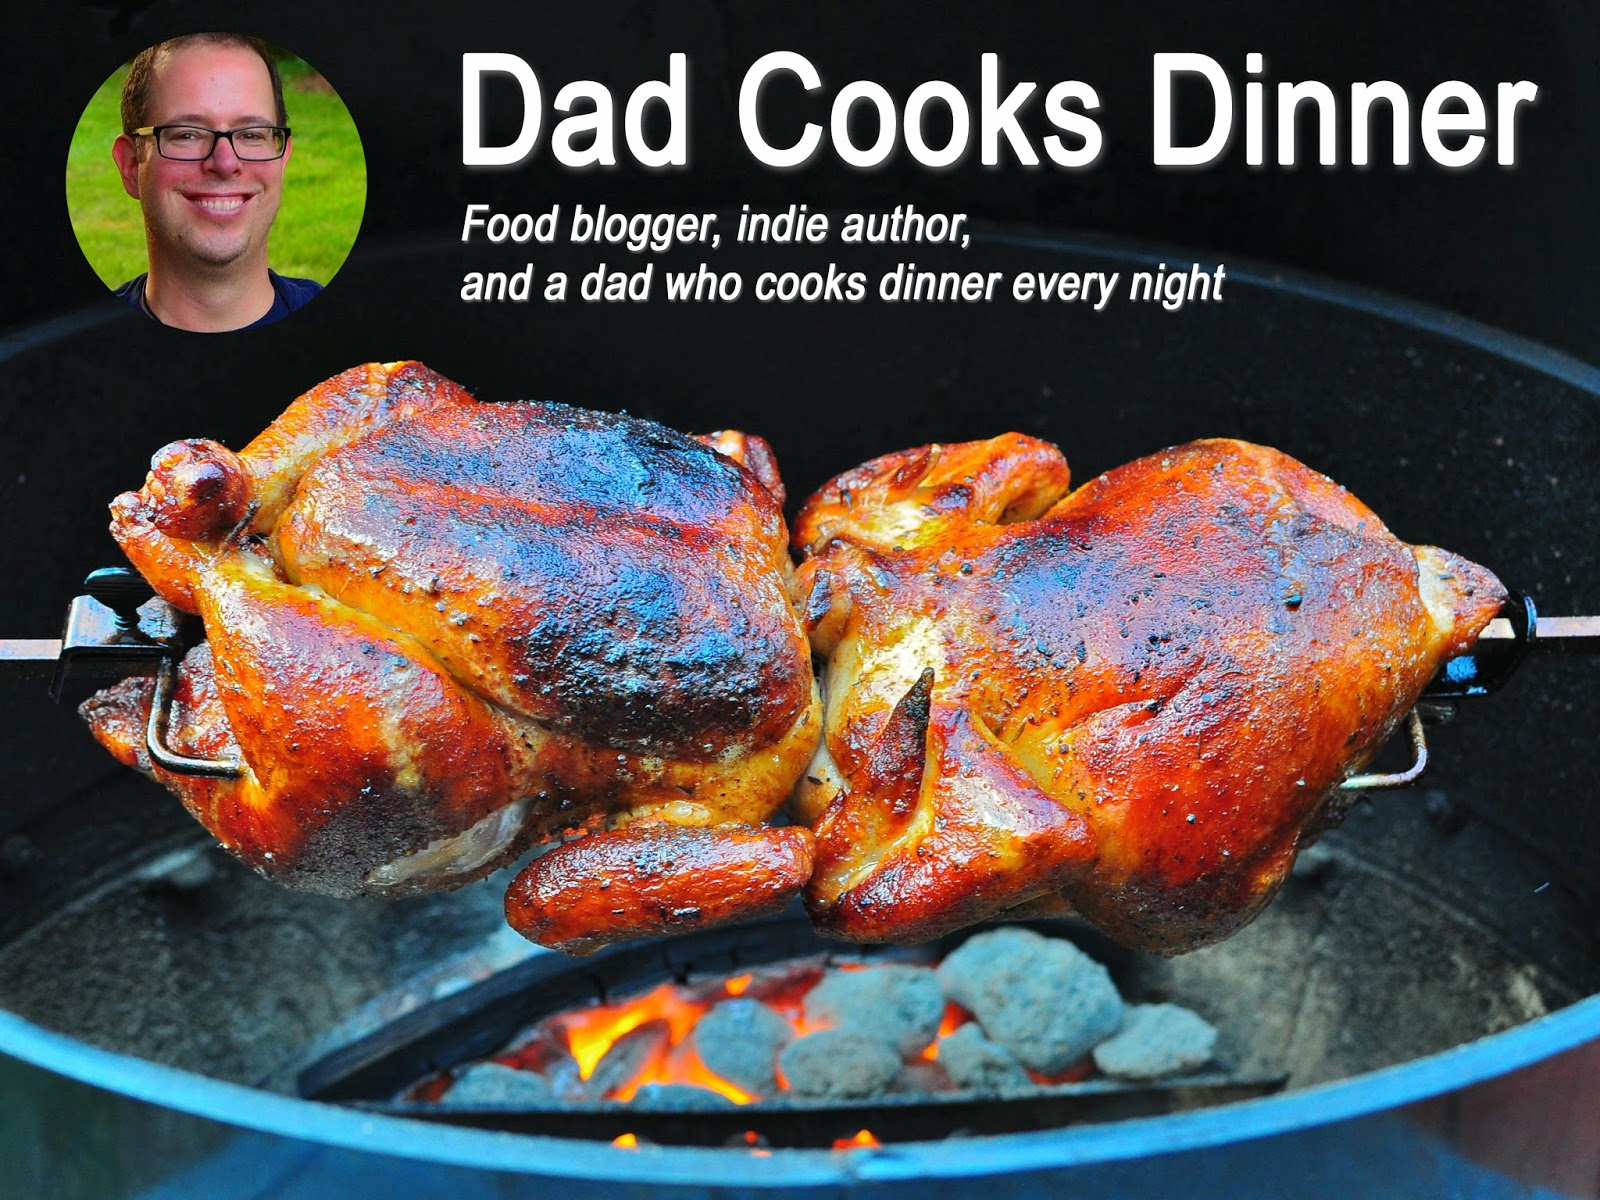 book signing in chicago - iacp 2014 book & blog festival